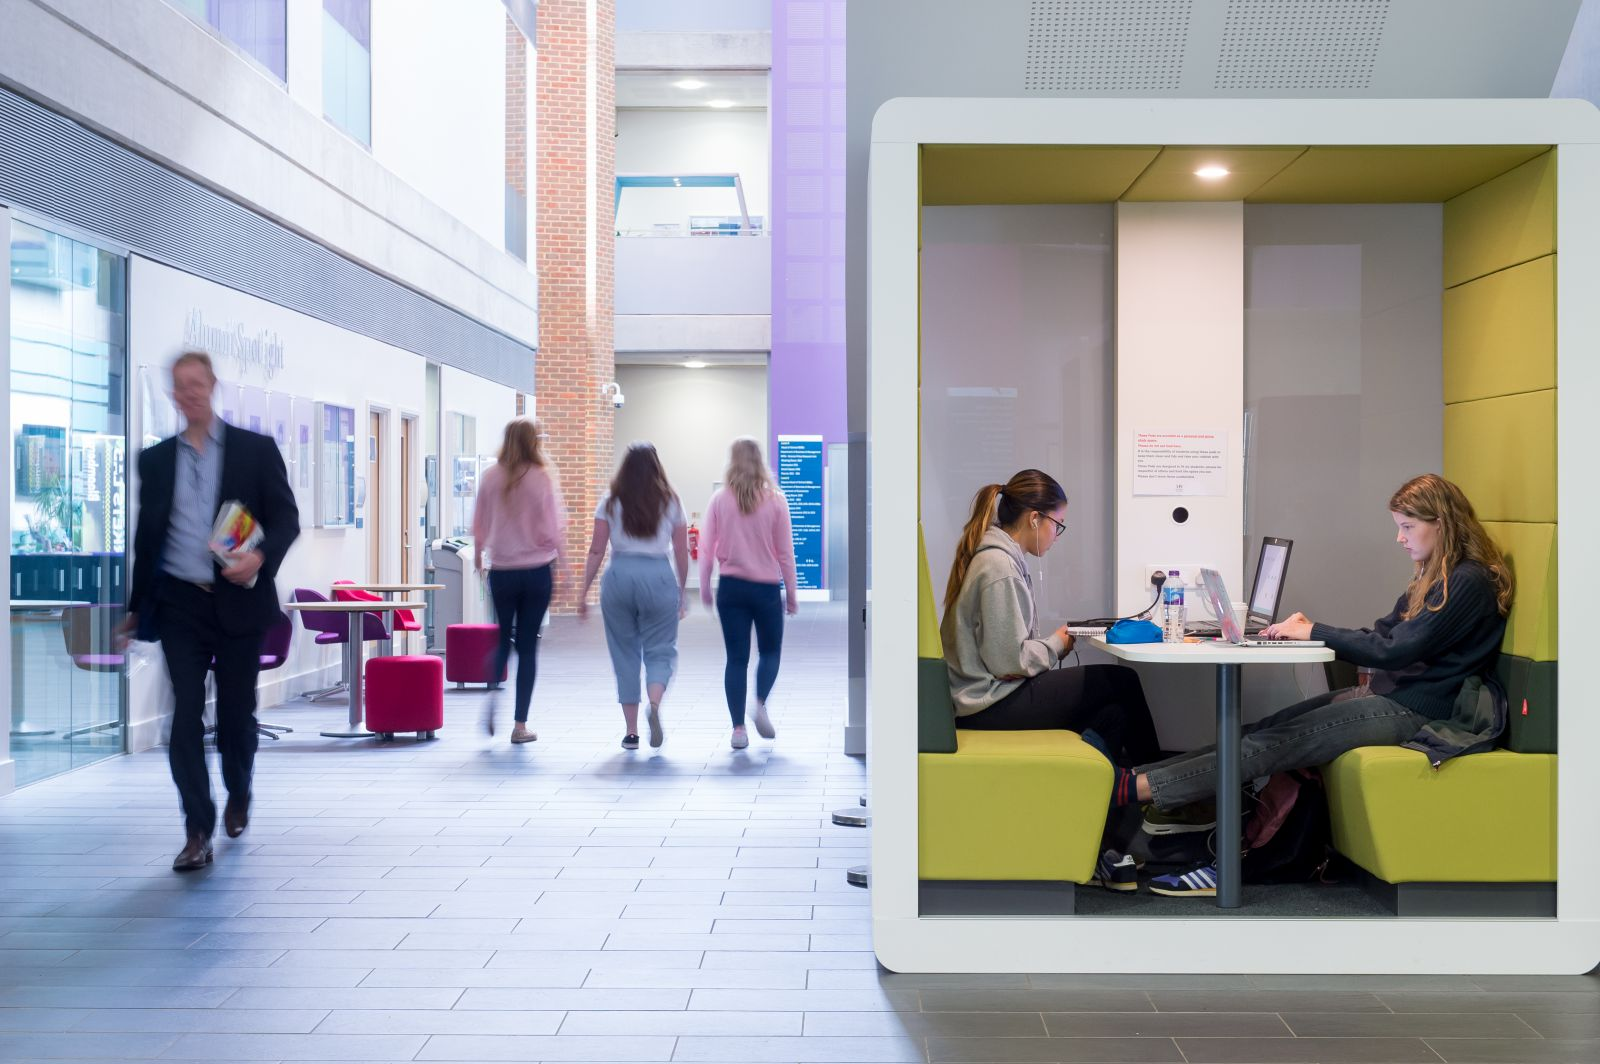 Students use a study pod in the Jubilee Building, home to the University of Sussex Business School